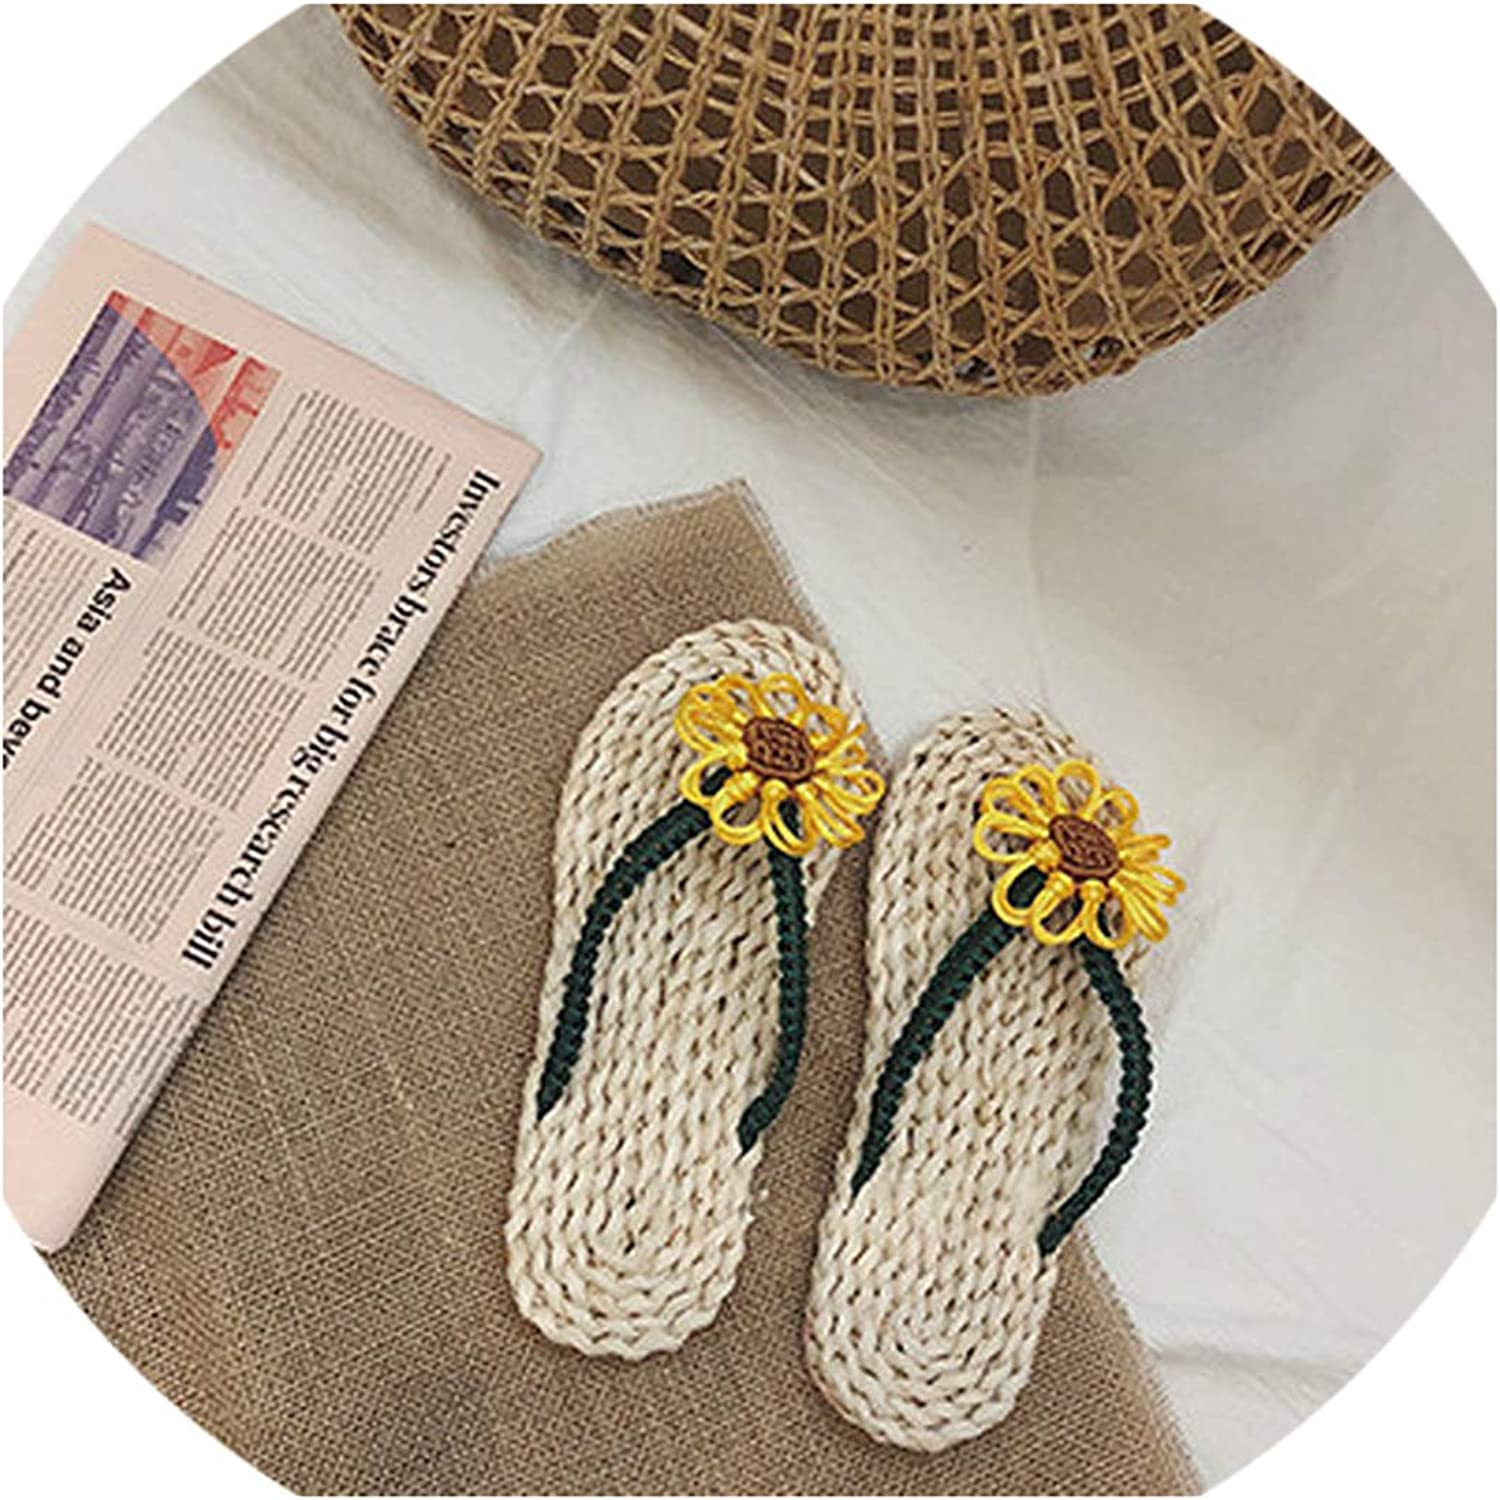 April With You Women Beach Slippers Straw Slippers Summer shoes Flowers Flat Ladies shoes Slides Gladiator shoes